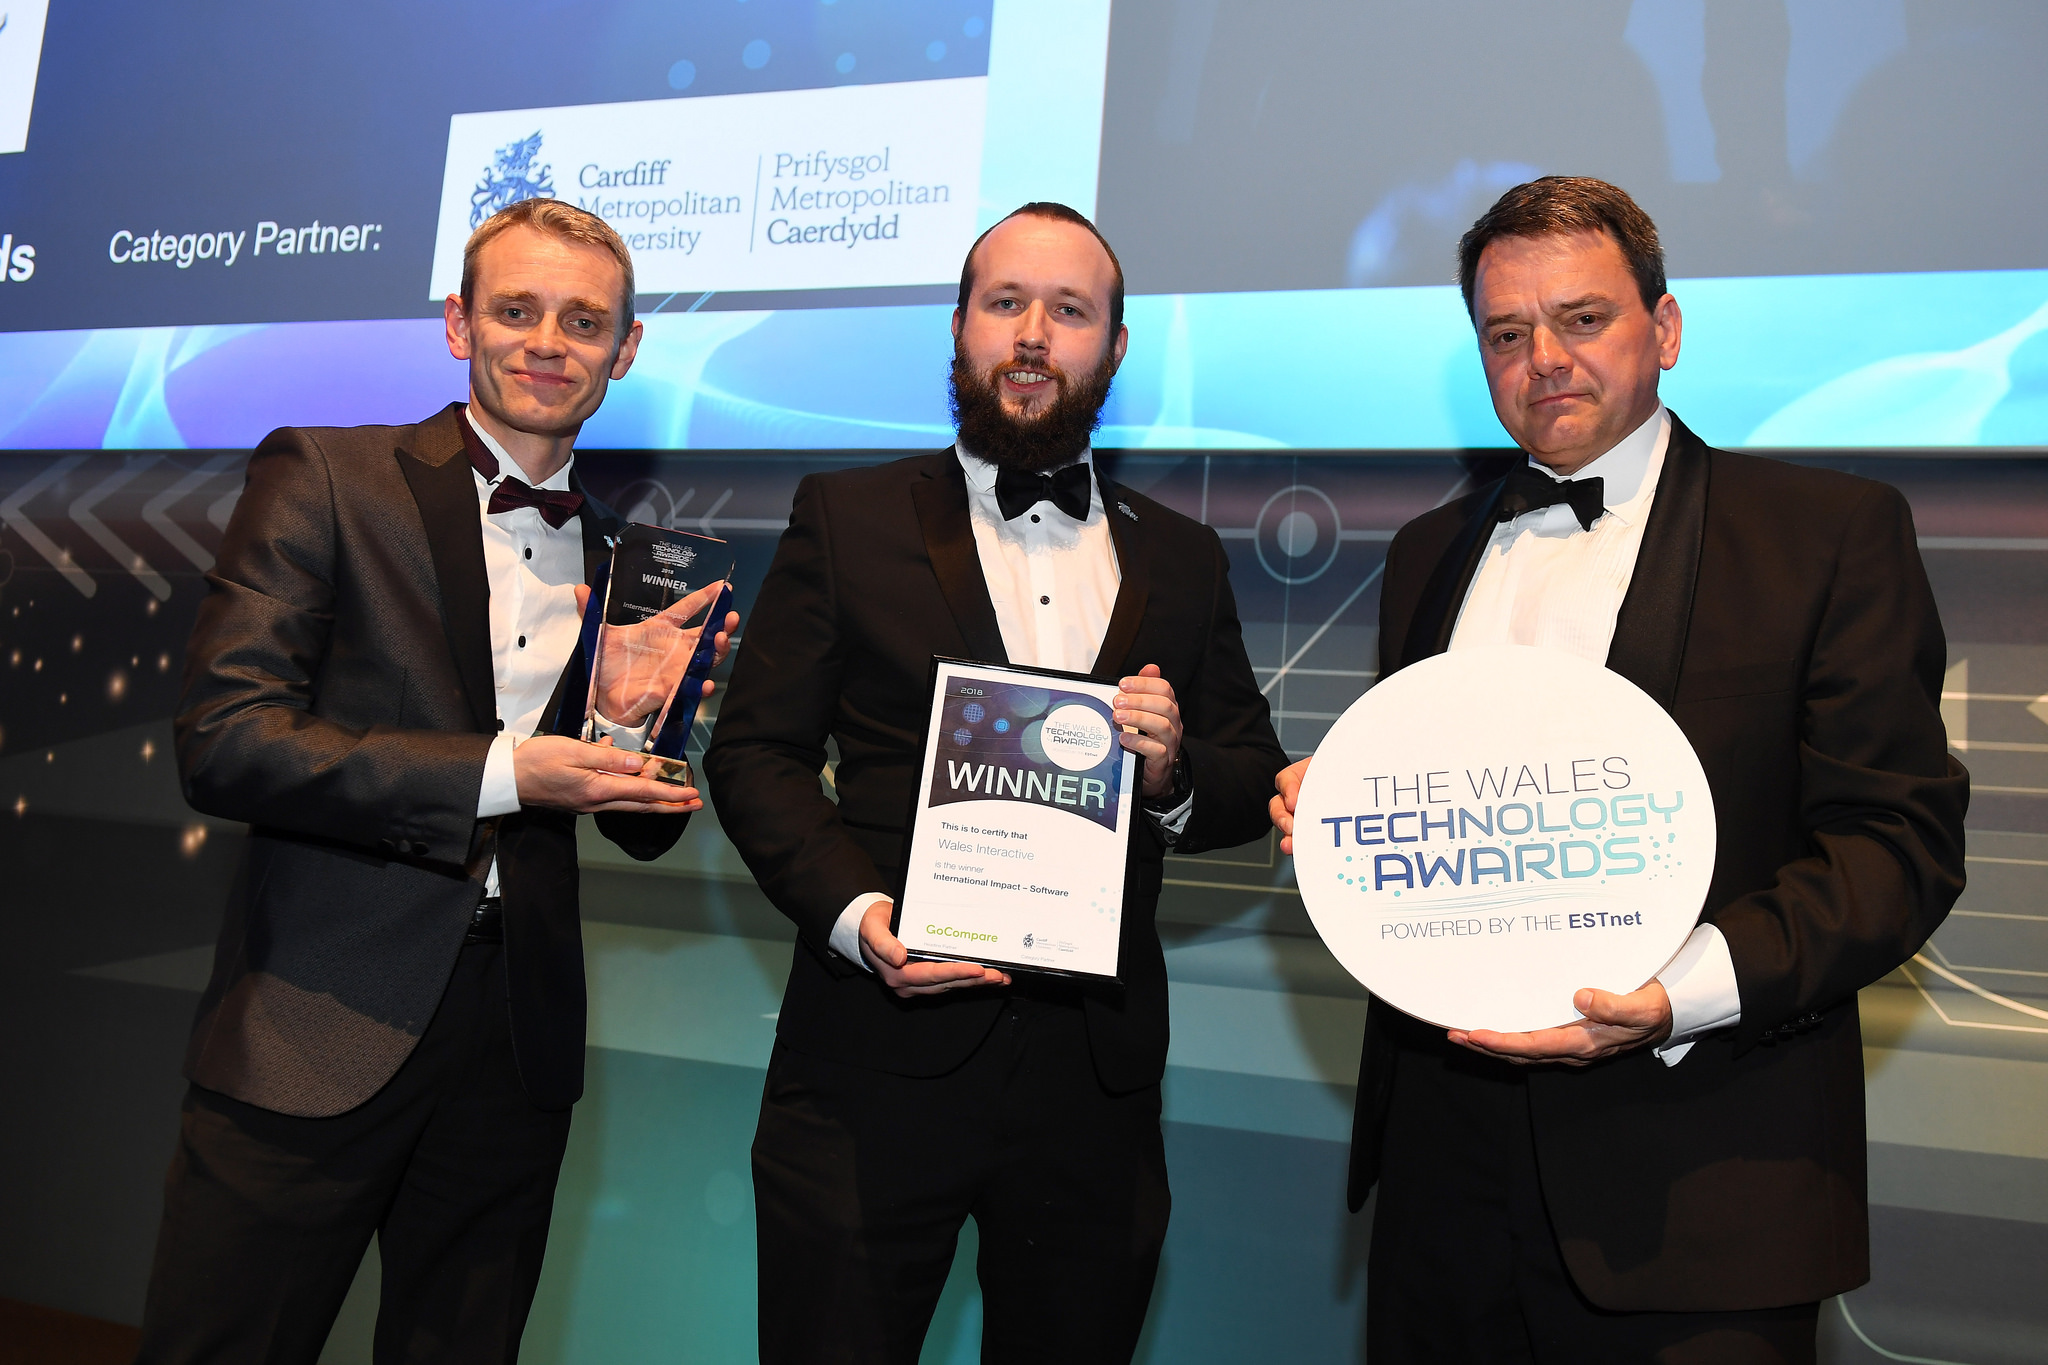 Wales_Technology_Award_Winners_Wales_Int